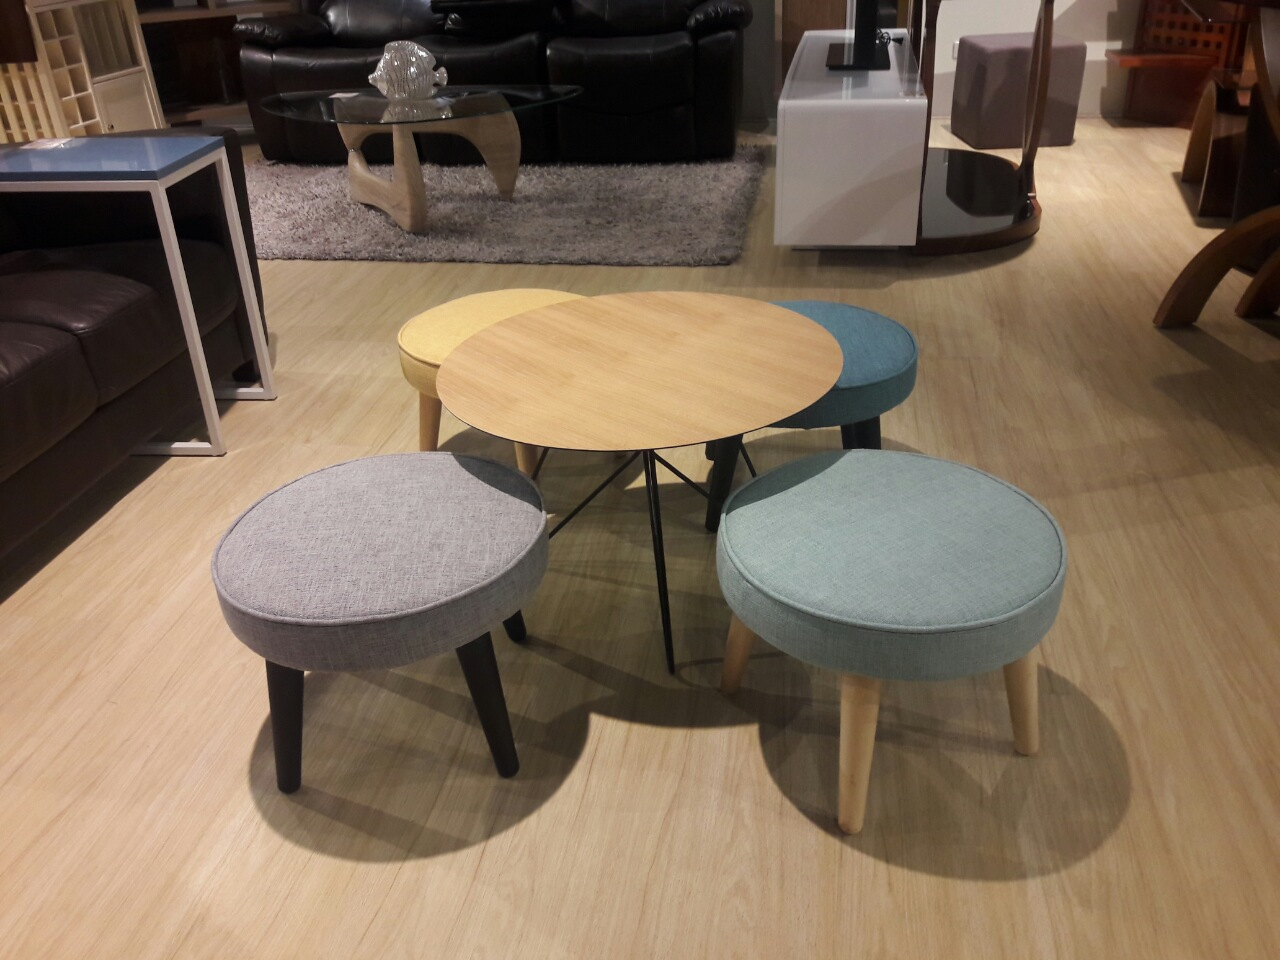 Taine Center Table Furniture Store Manila Philippines Urban Concepts